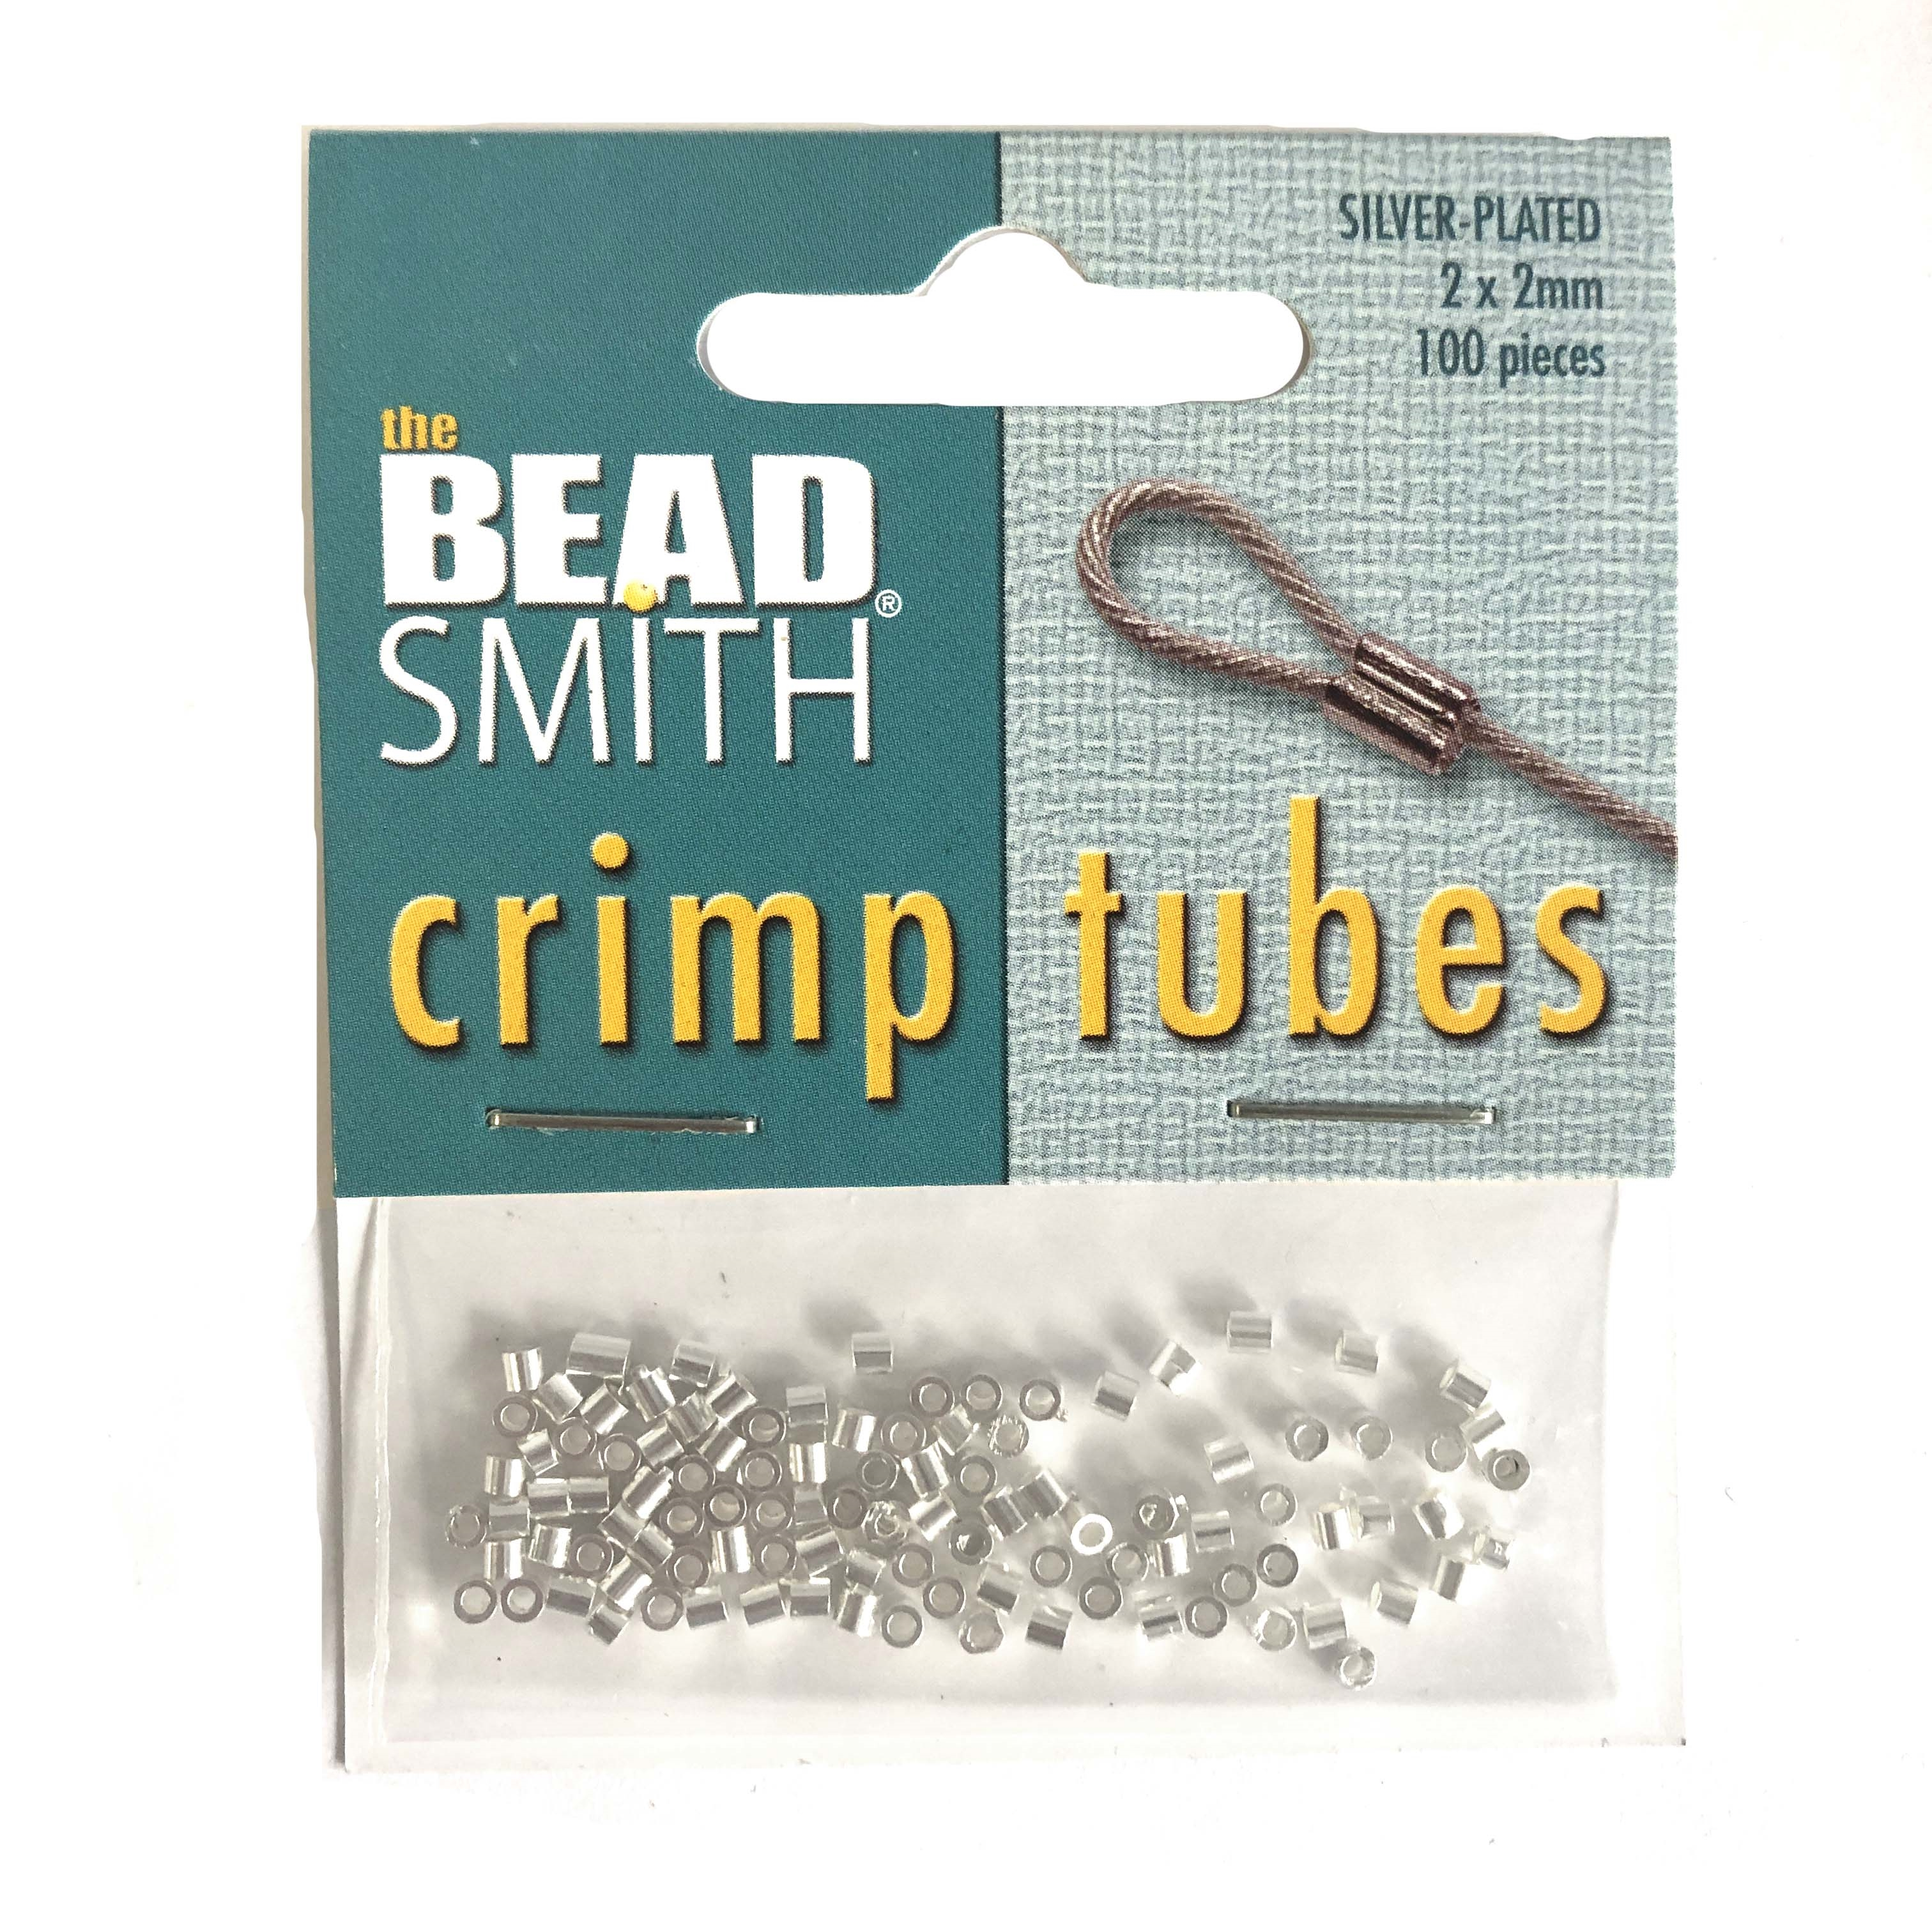 crimp tubes, tube beads, silver plated, 09349, crimp beads, crimps, silver, 2x2mm, 100 pieces, B'sue Boutiques, jewelry supplies, findings, connectors, jewelry making